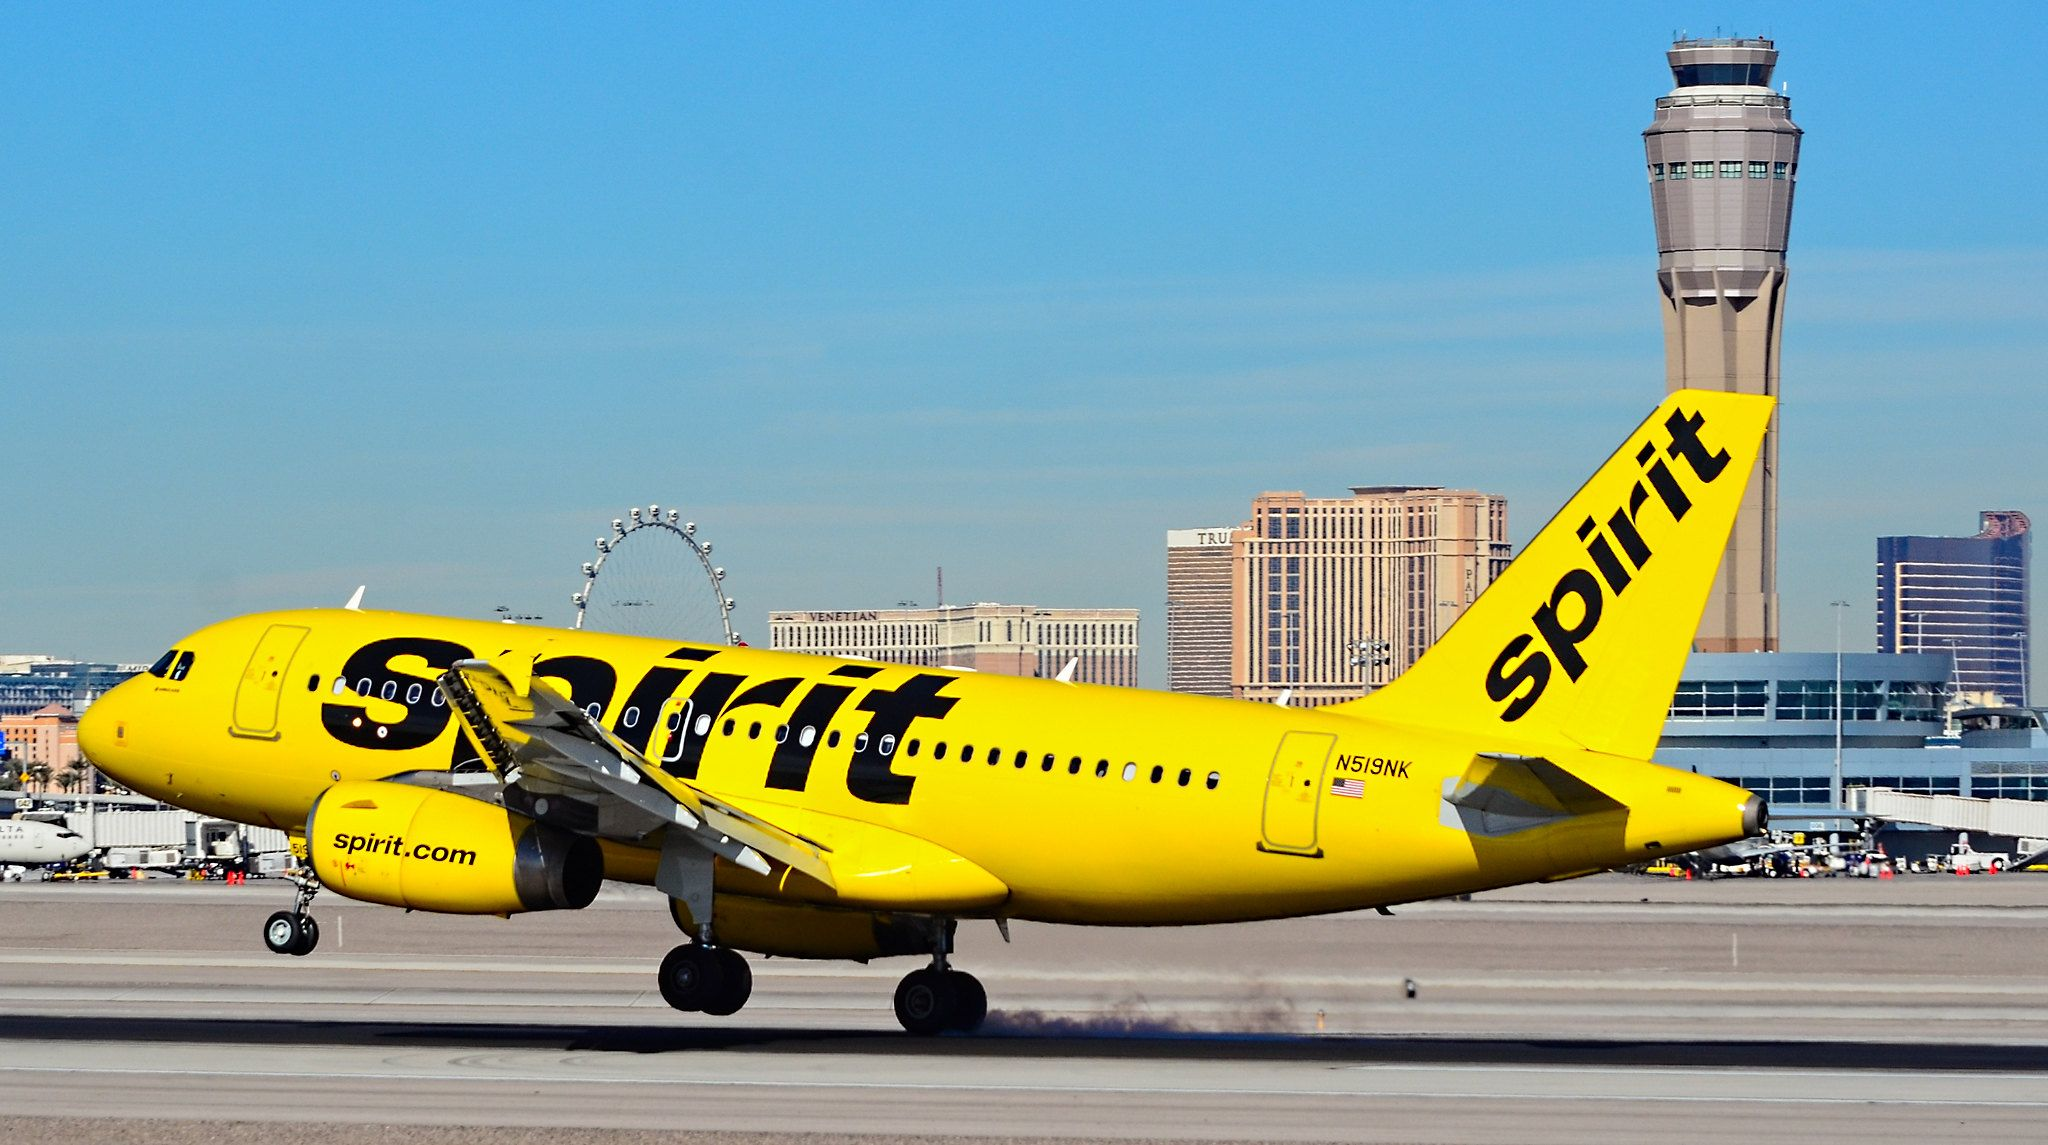 N519NK Spirit Airlines Airbus A319132 s/n 2723 in 2020